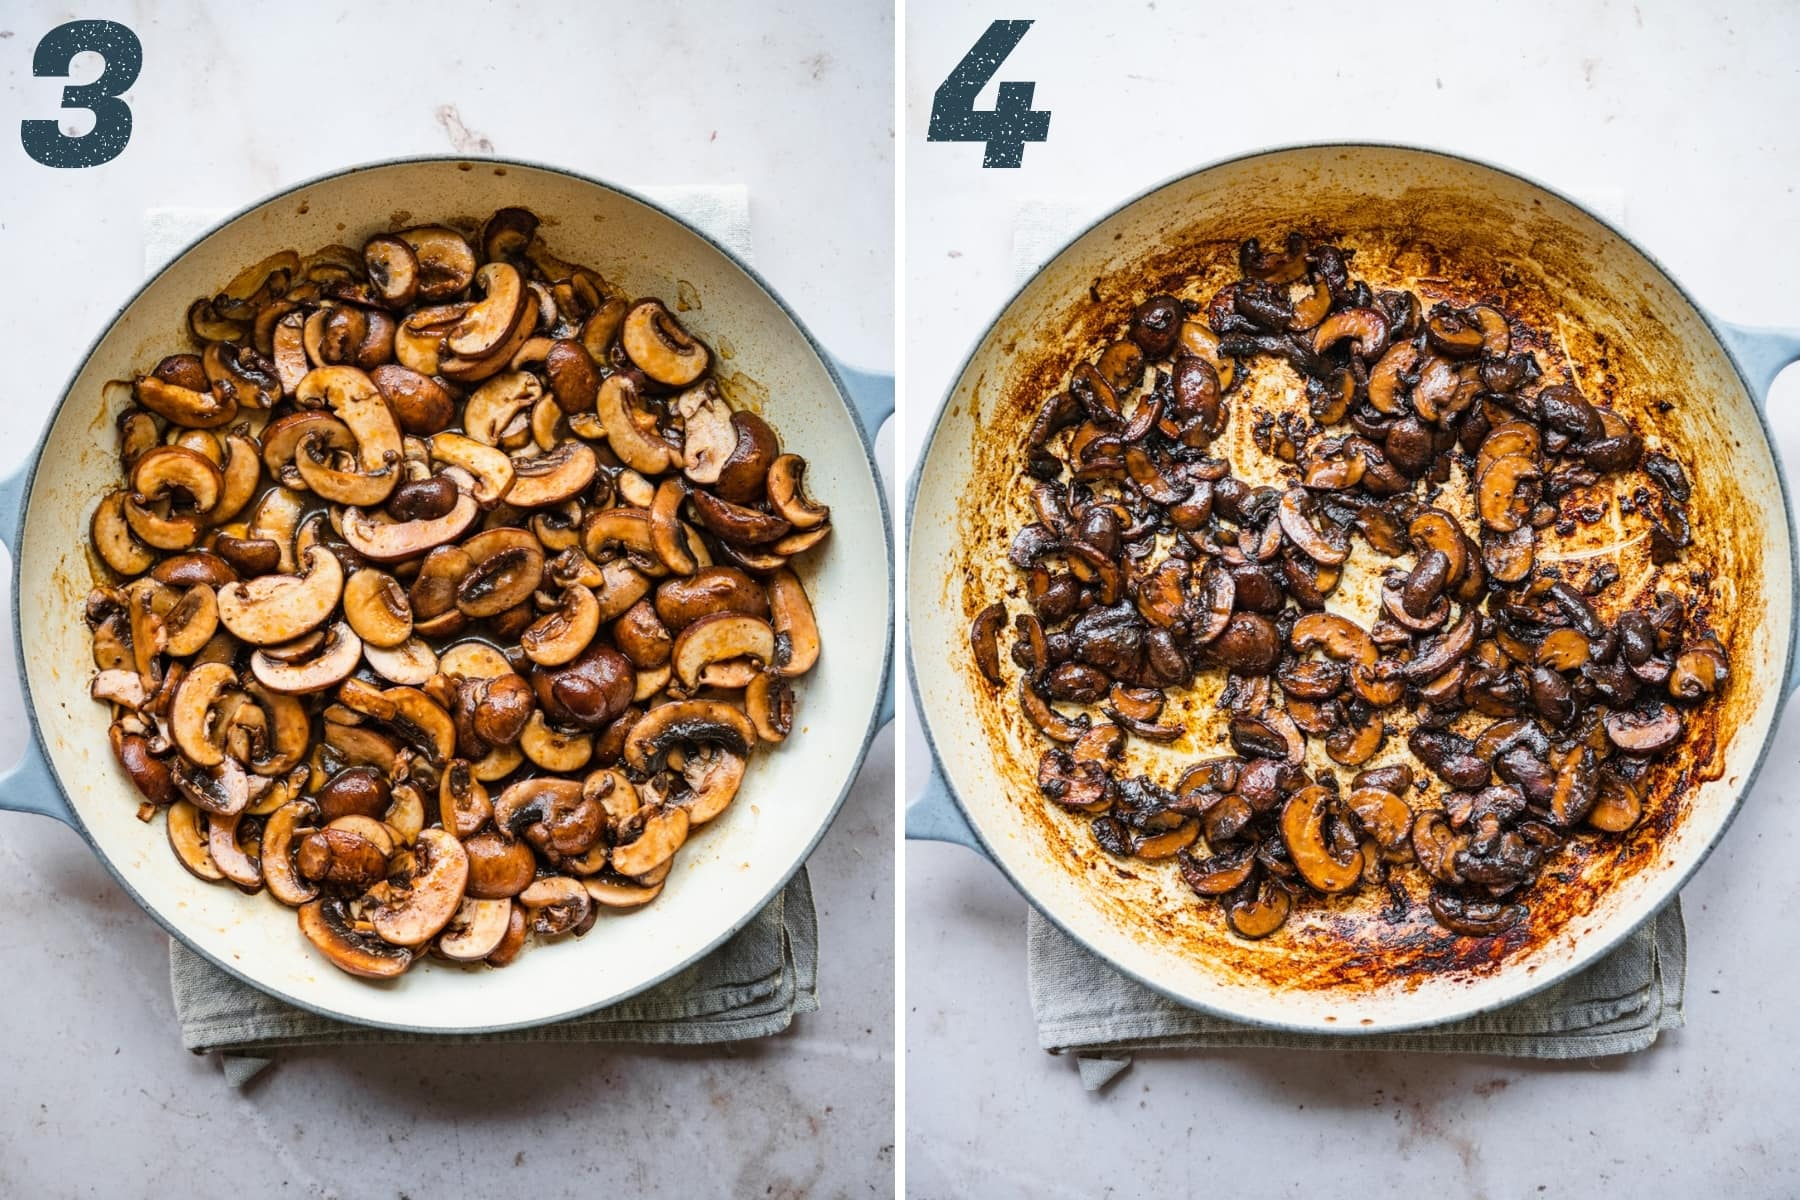 before and after cooking vegan mushroom bacon in pan.